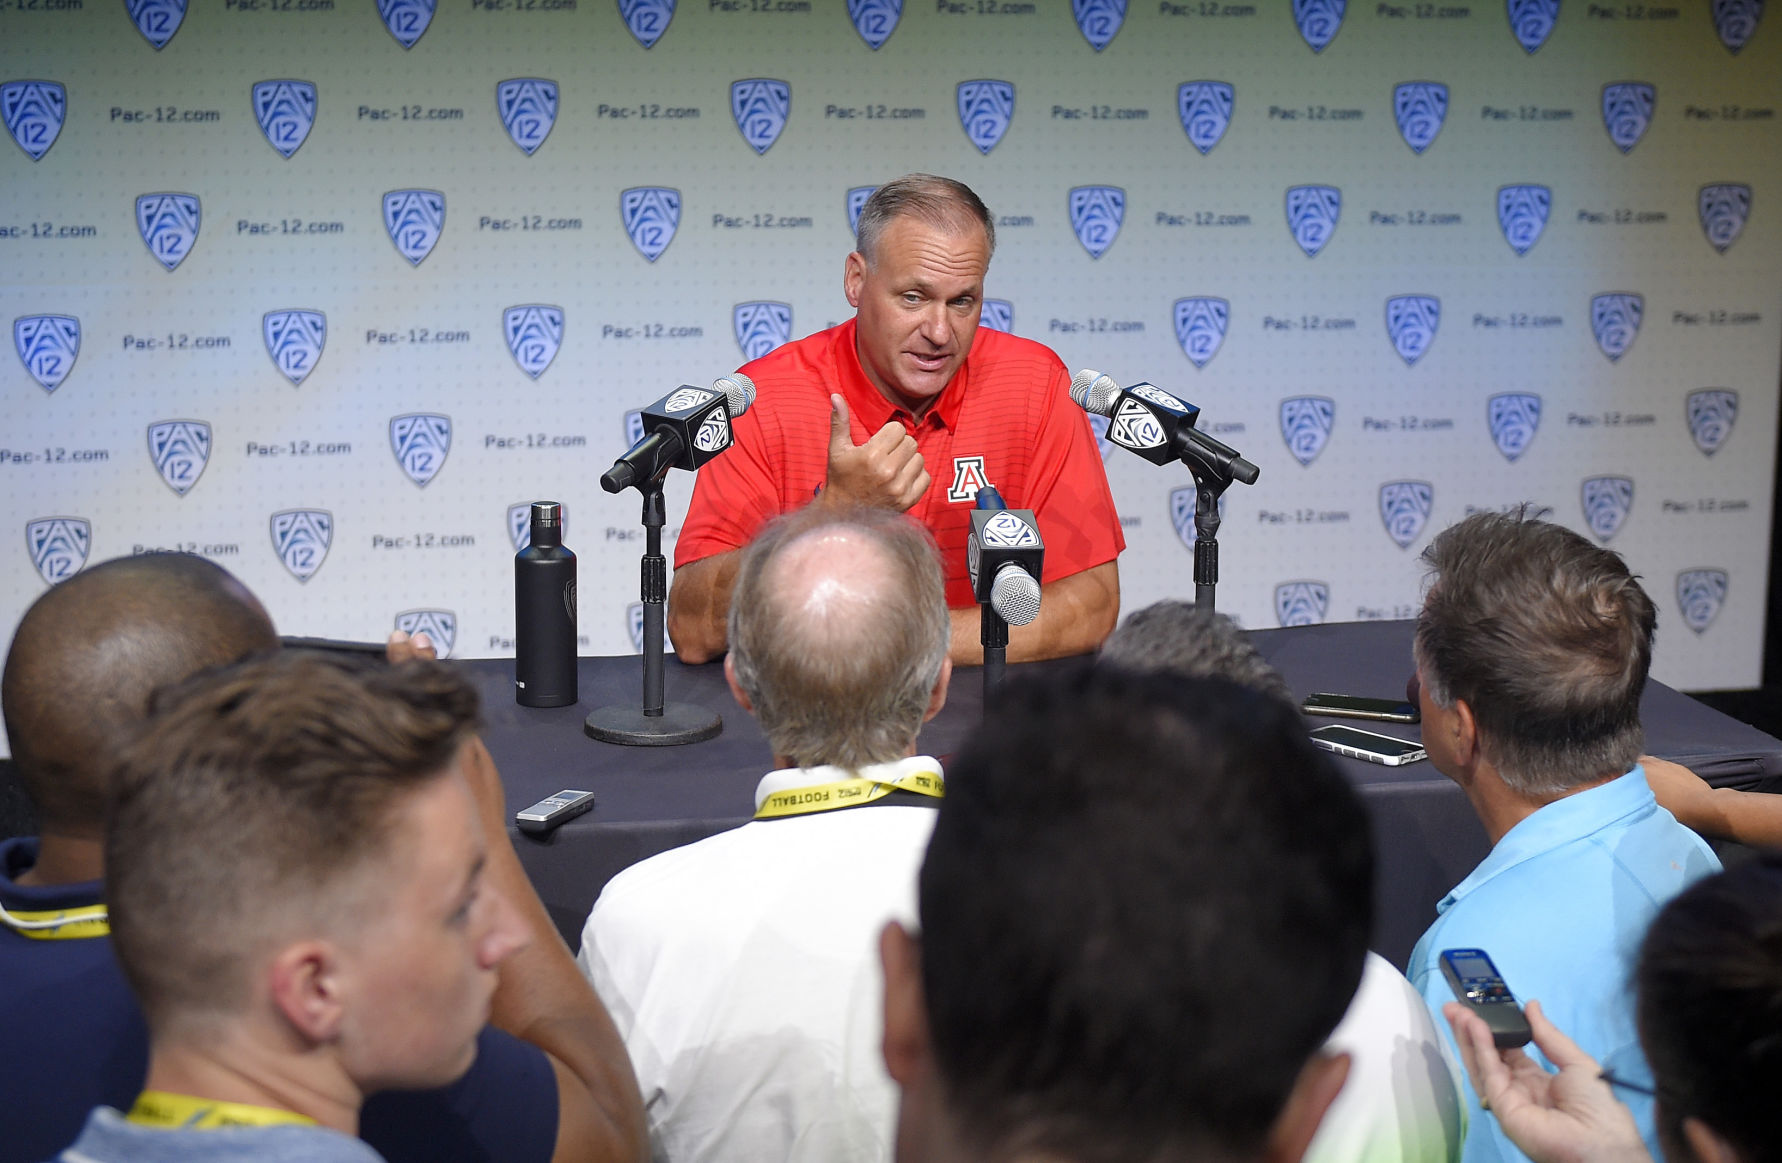 Stanford pegged to finish 2nd, Cal last in Pac-12 football poll